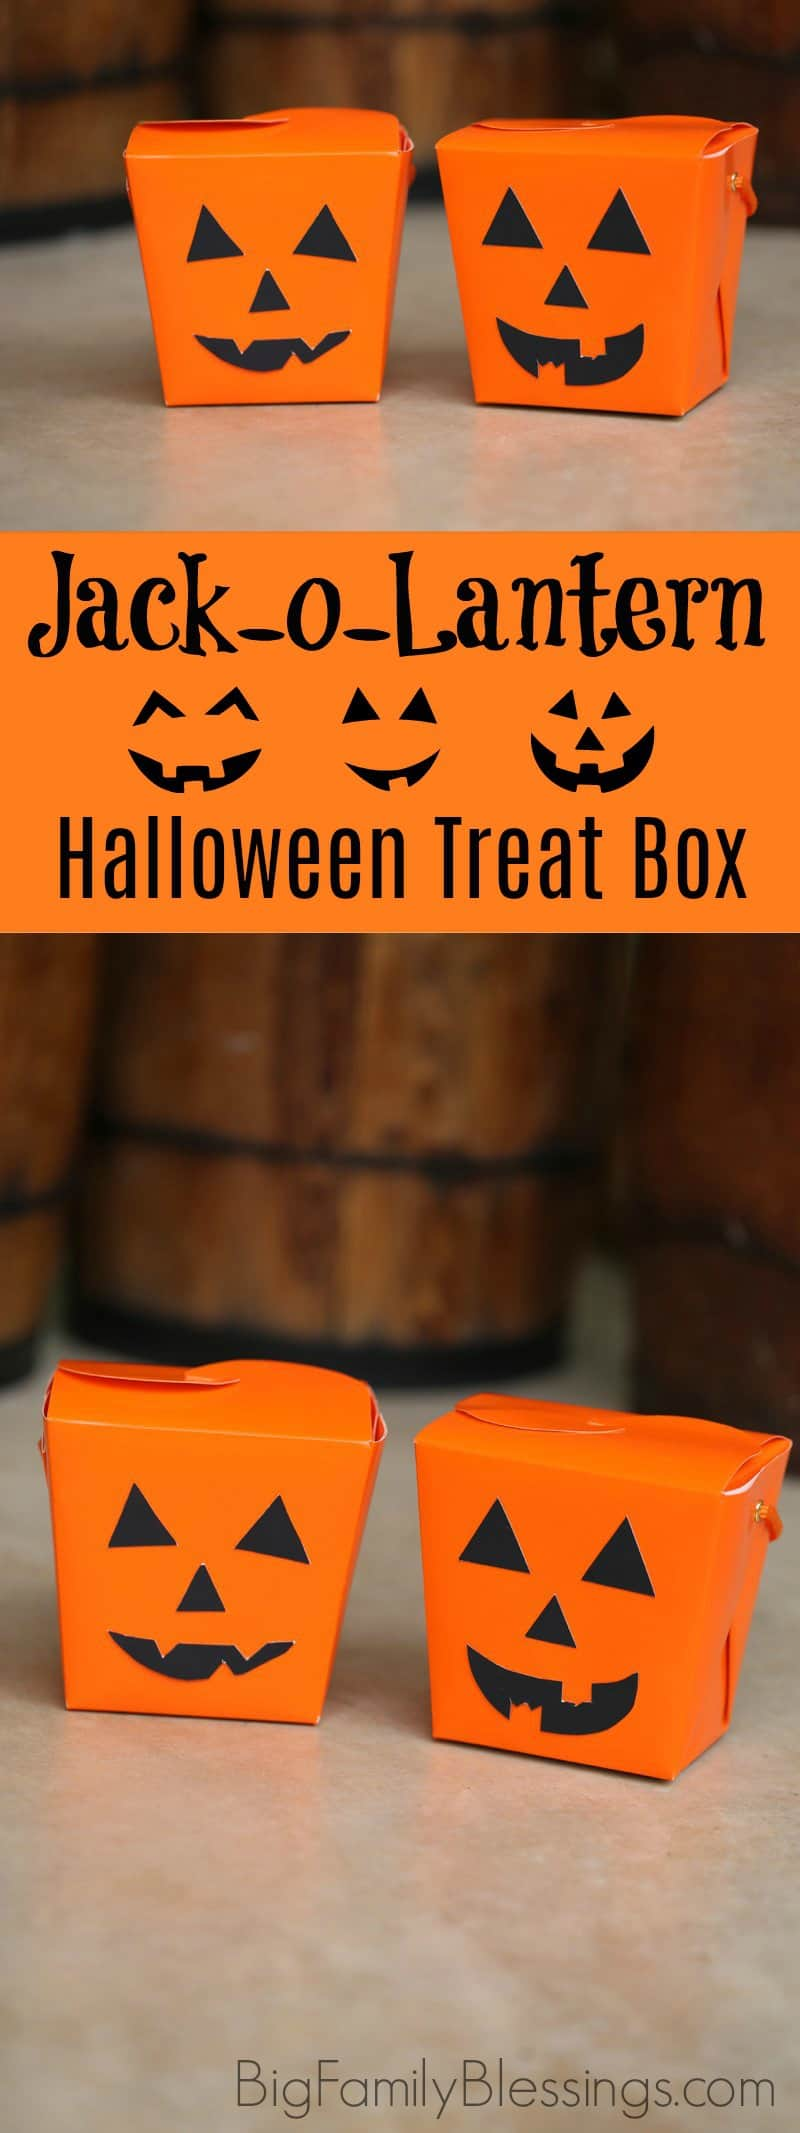 DIY Jack-o-lantern Halloween Treat Box perfect halloween boo'ing container. DIY halloween pumpkin craft for kids.